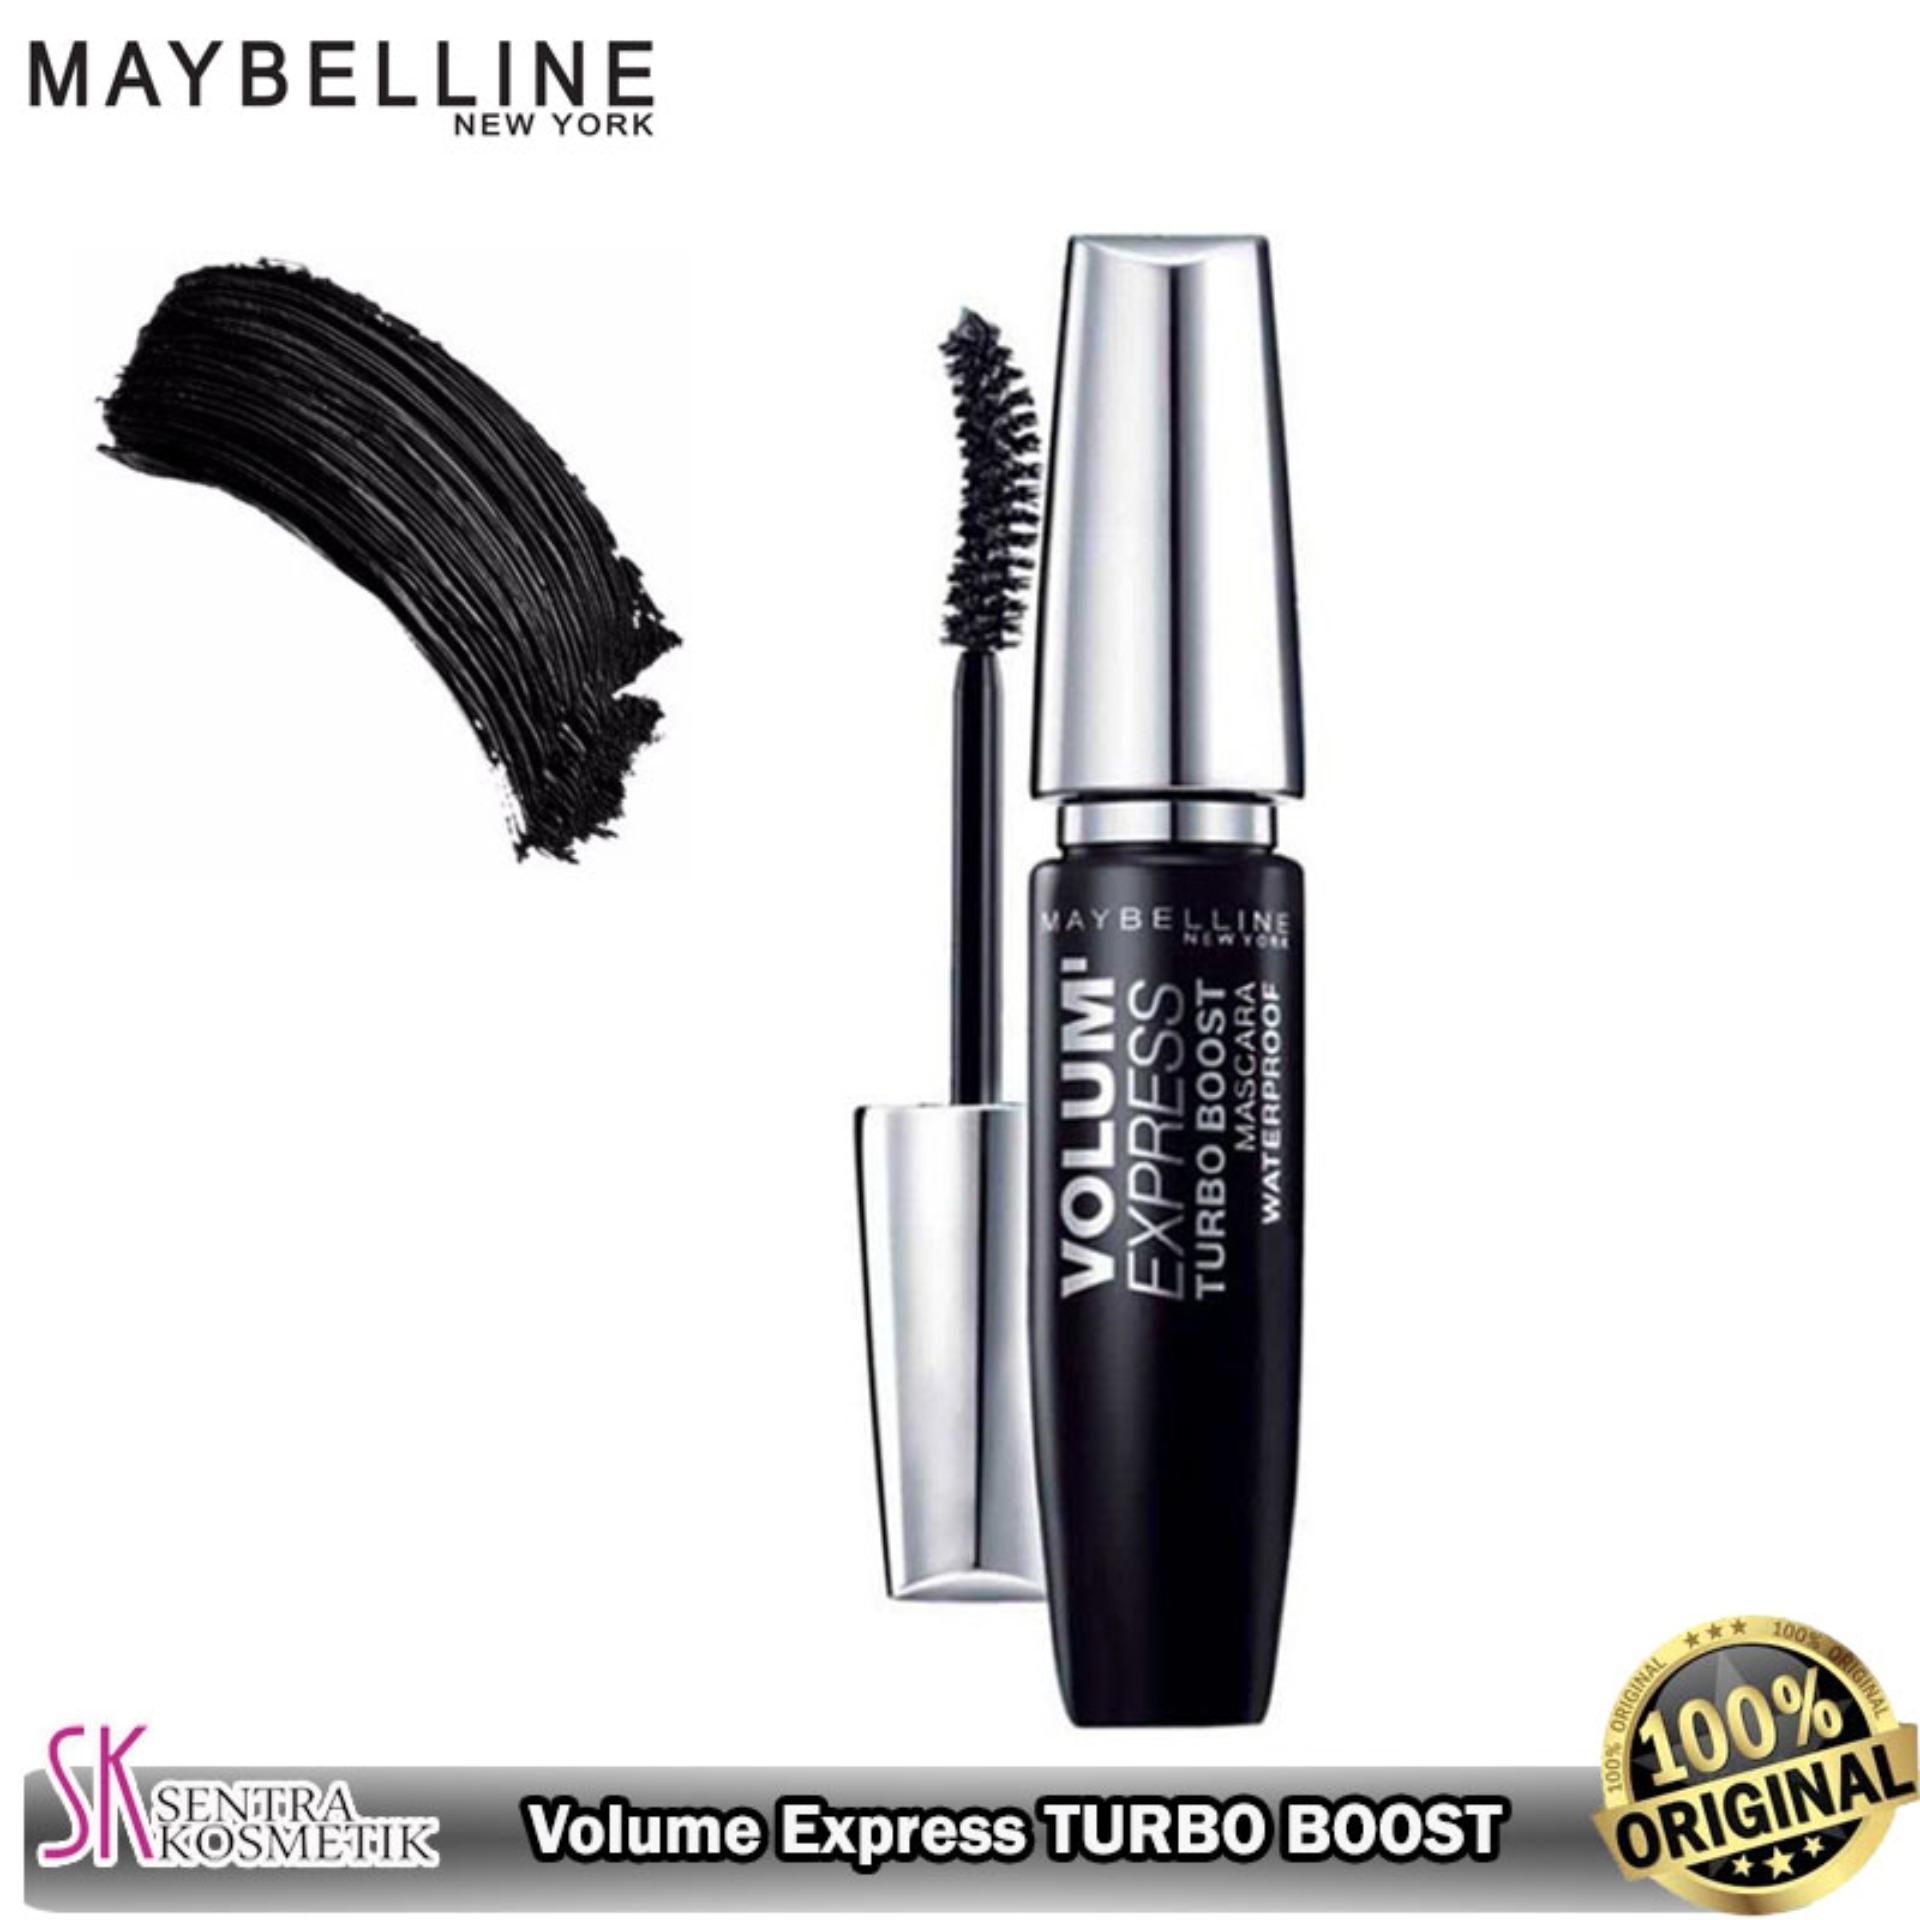 34d0b690a7d MAYBELLINE Volum Express TURBO BOOST Mascara Waterproof - Hitam